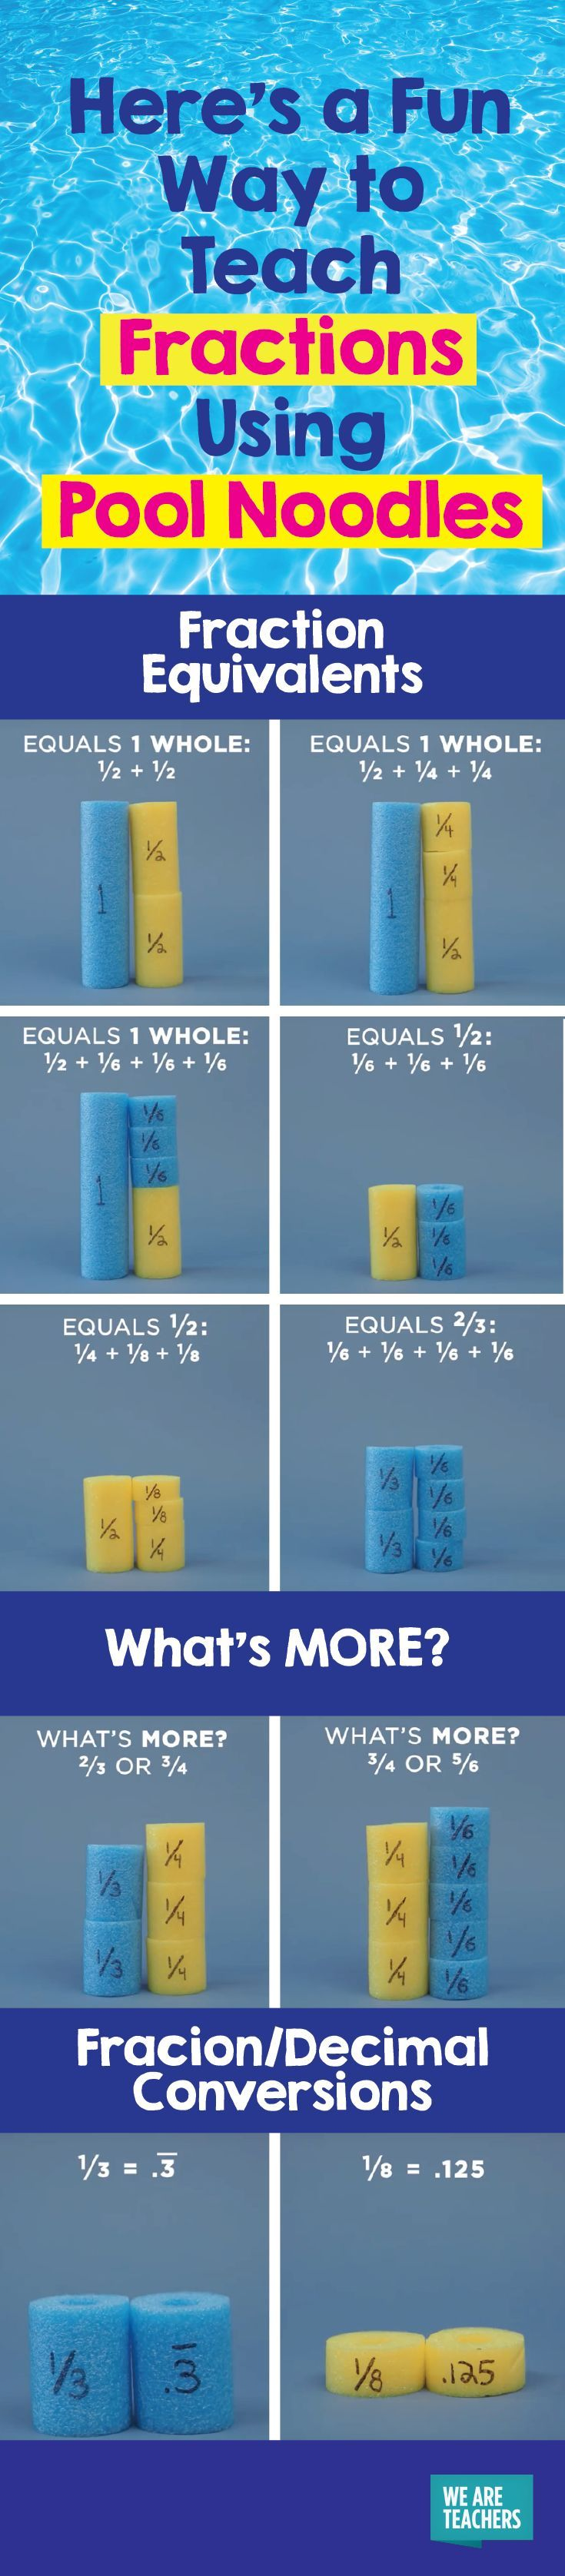 64 best Math Mania images on Pinterest | Learning, School and ...